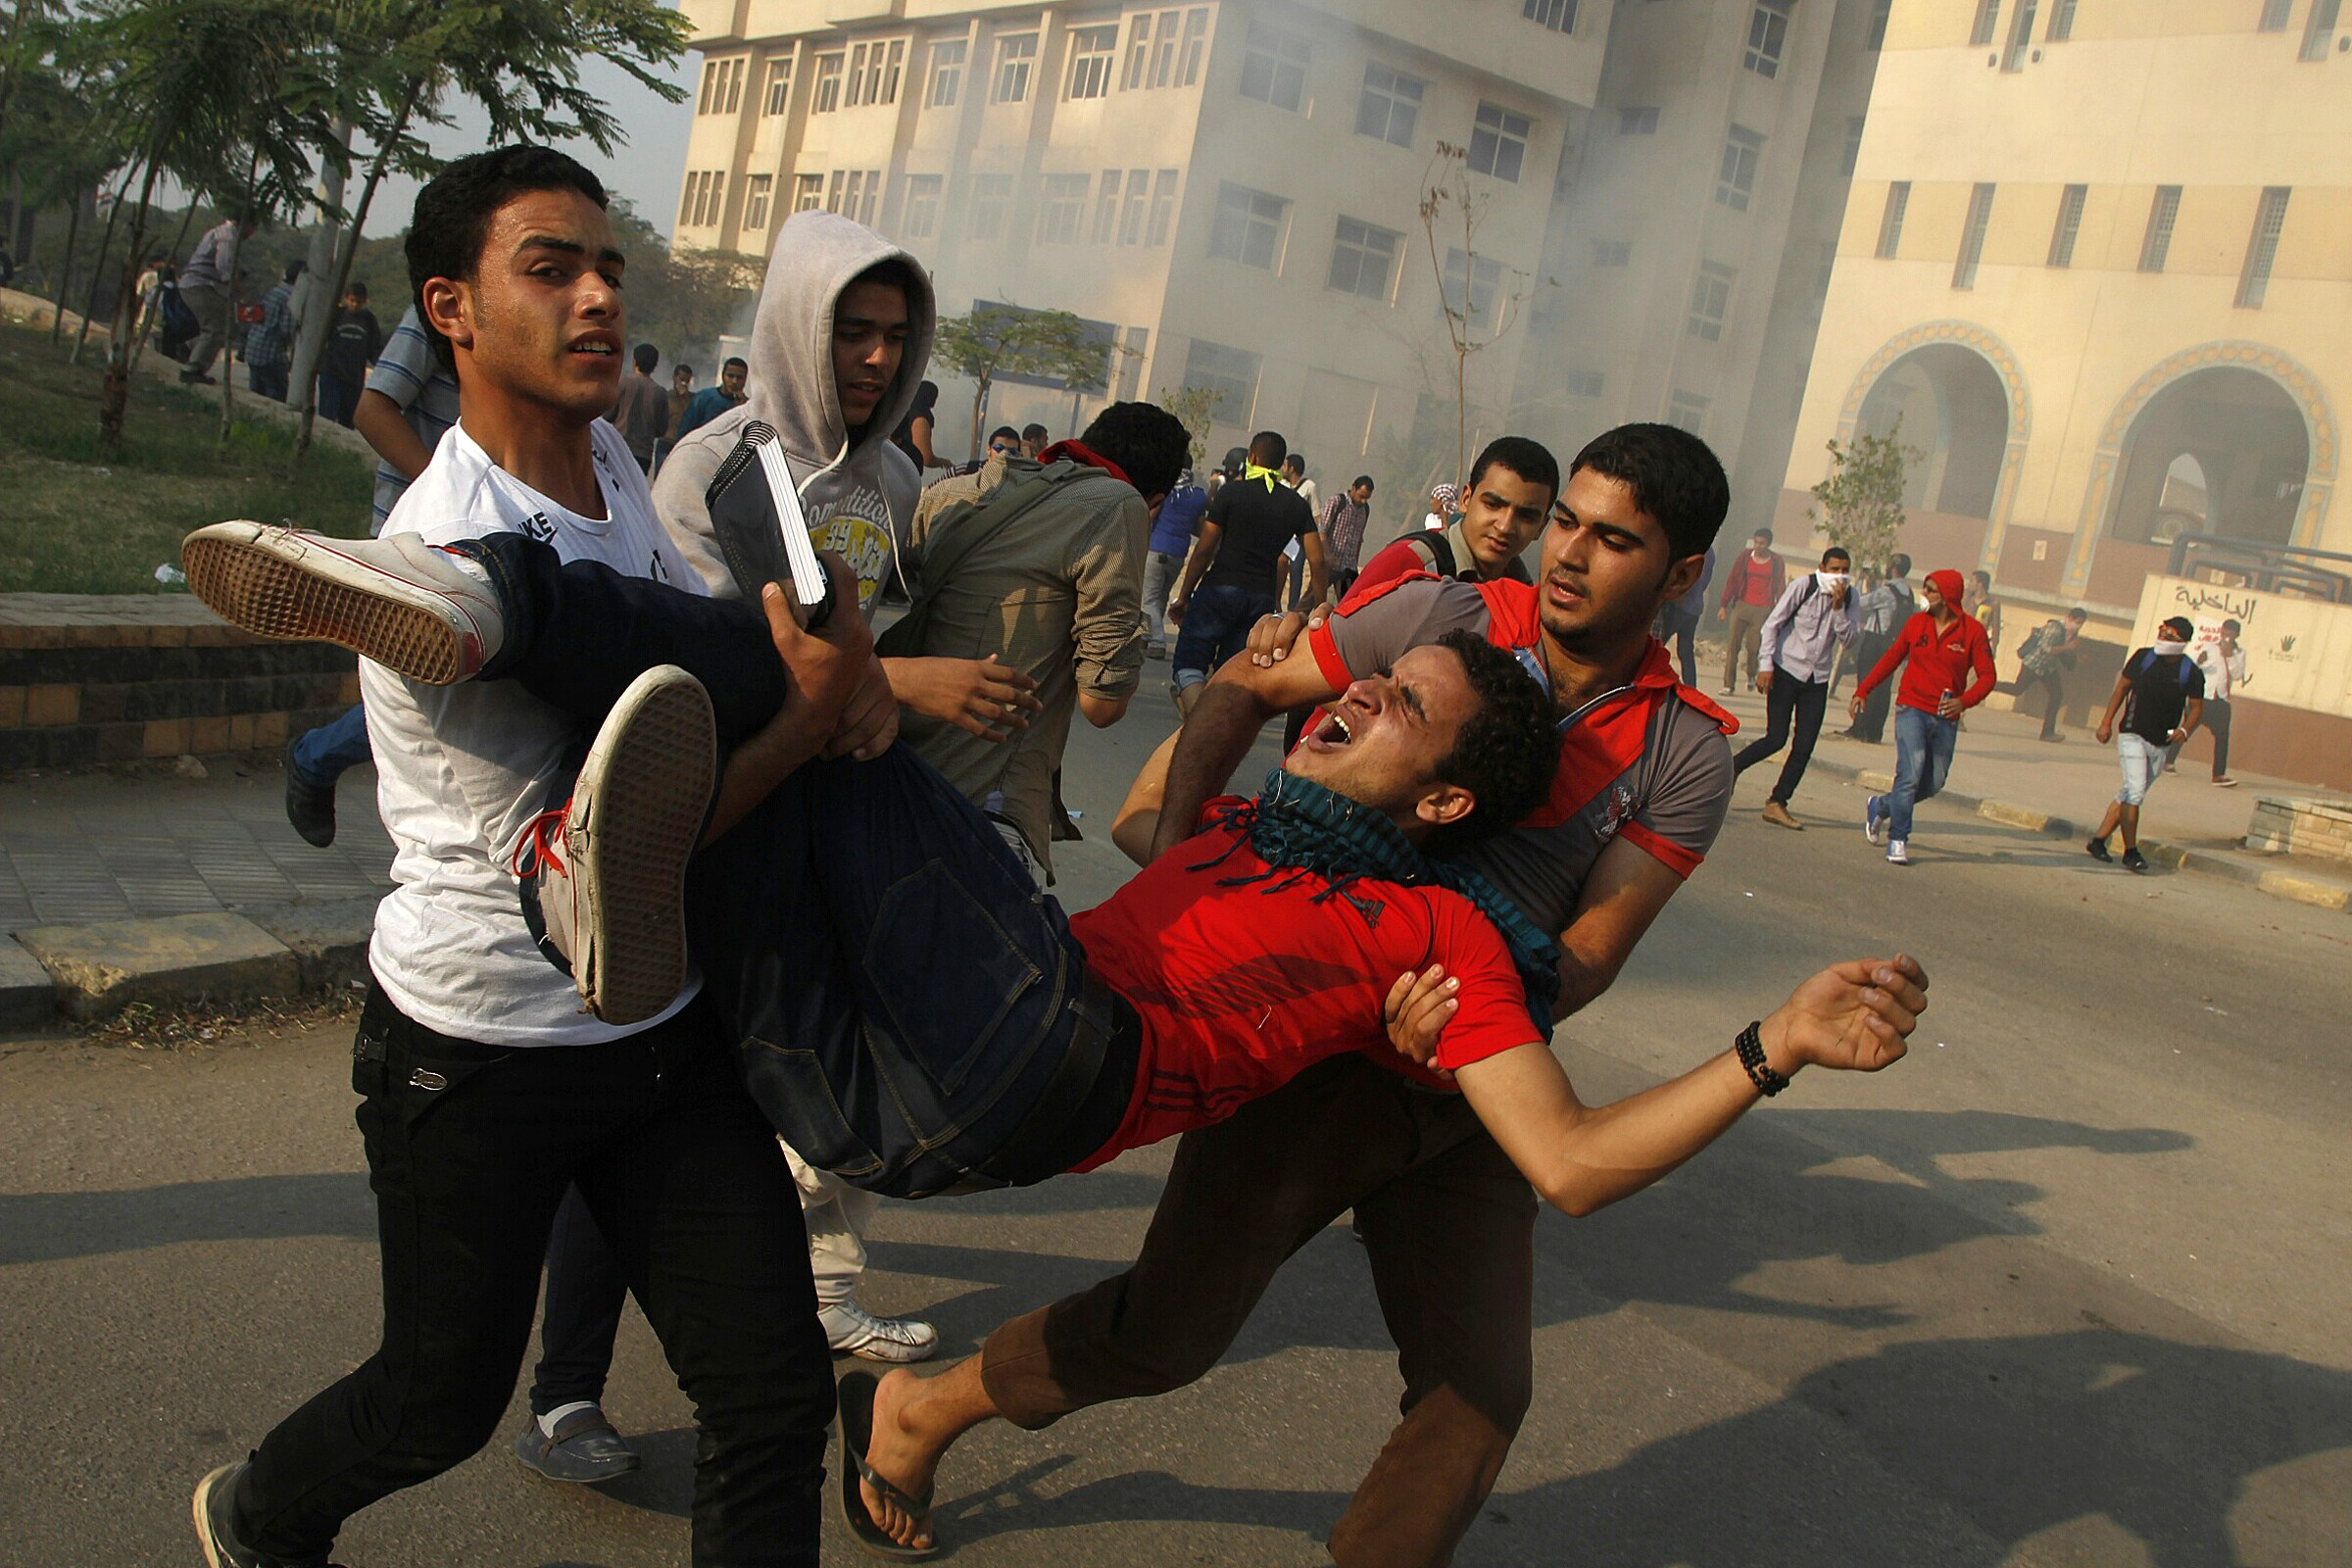 Student supporters of ousted president Mohamed Morsi and the Muslim brotherhood carry a comrade injured during clashes with Egyptian security forces outside their university camps in Cairo on October 28, 2013. (AFP PHOTO/MOHAMMED ABDEL MONEIM)